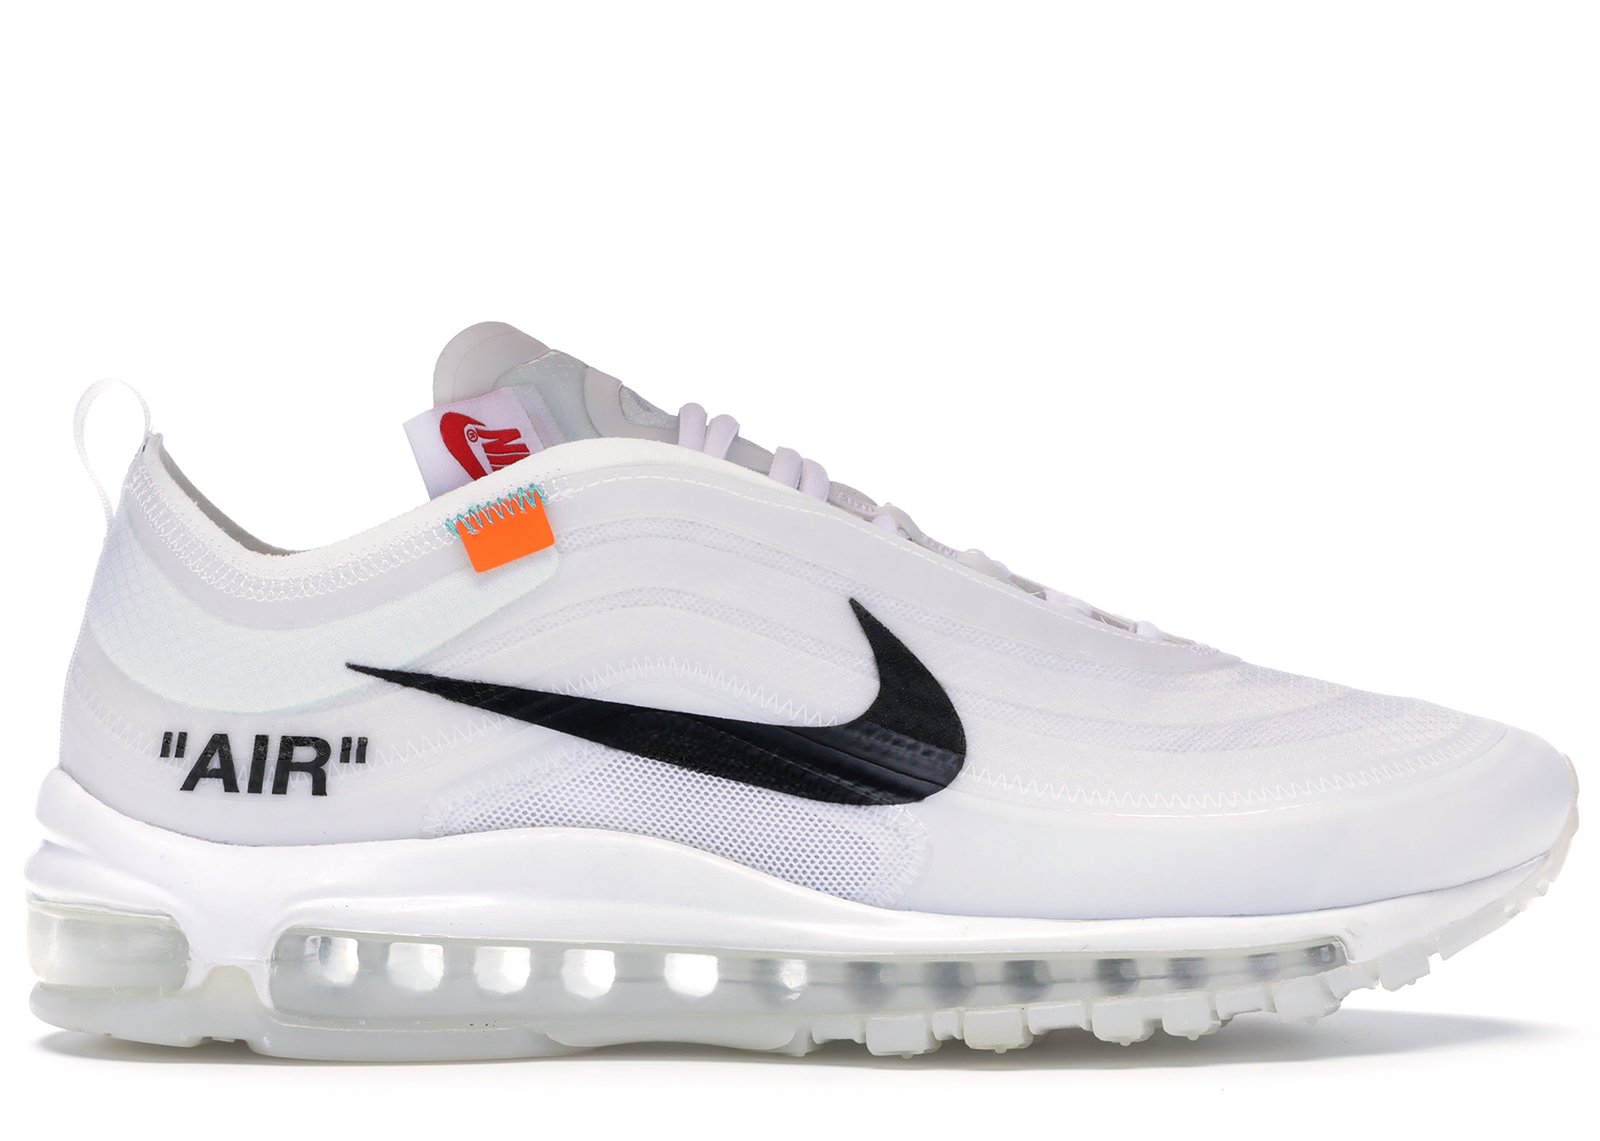 Nike Air Force Sportschuhe Air Jordan Nike Air Max white